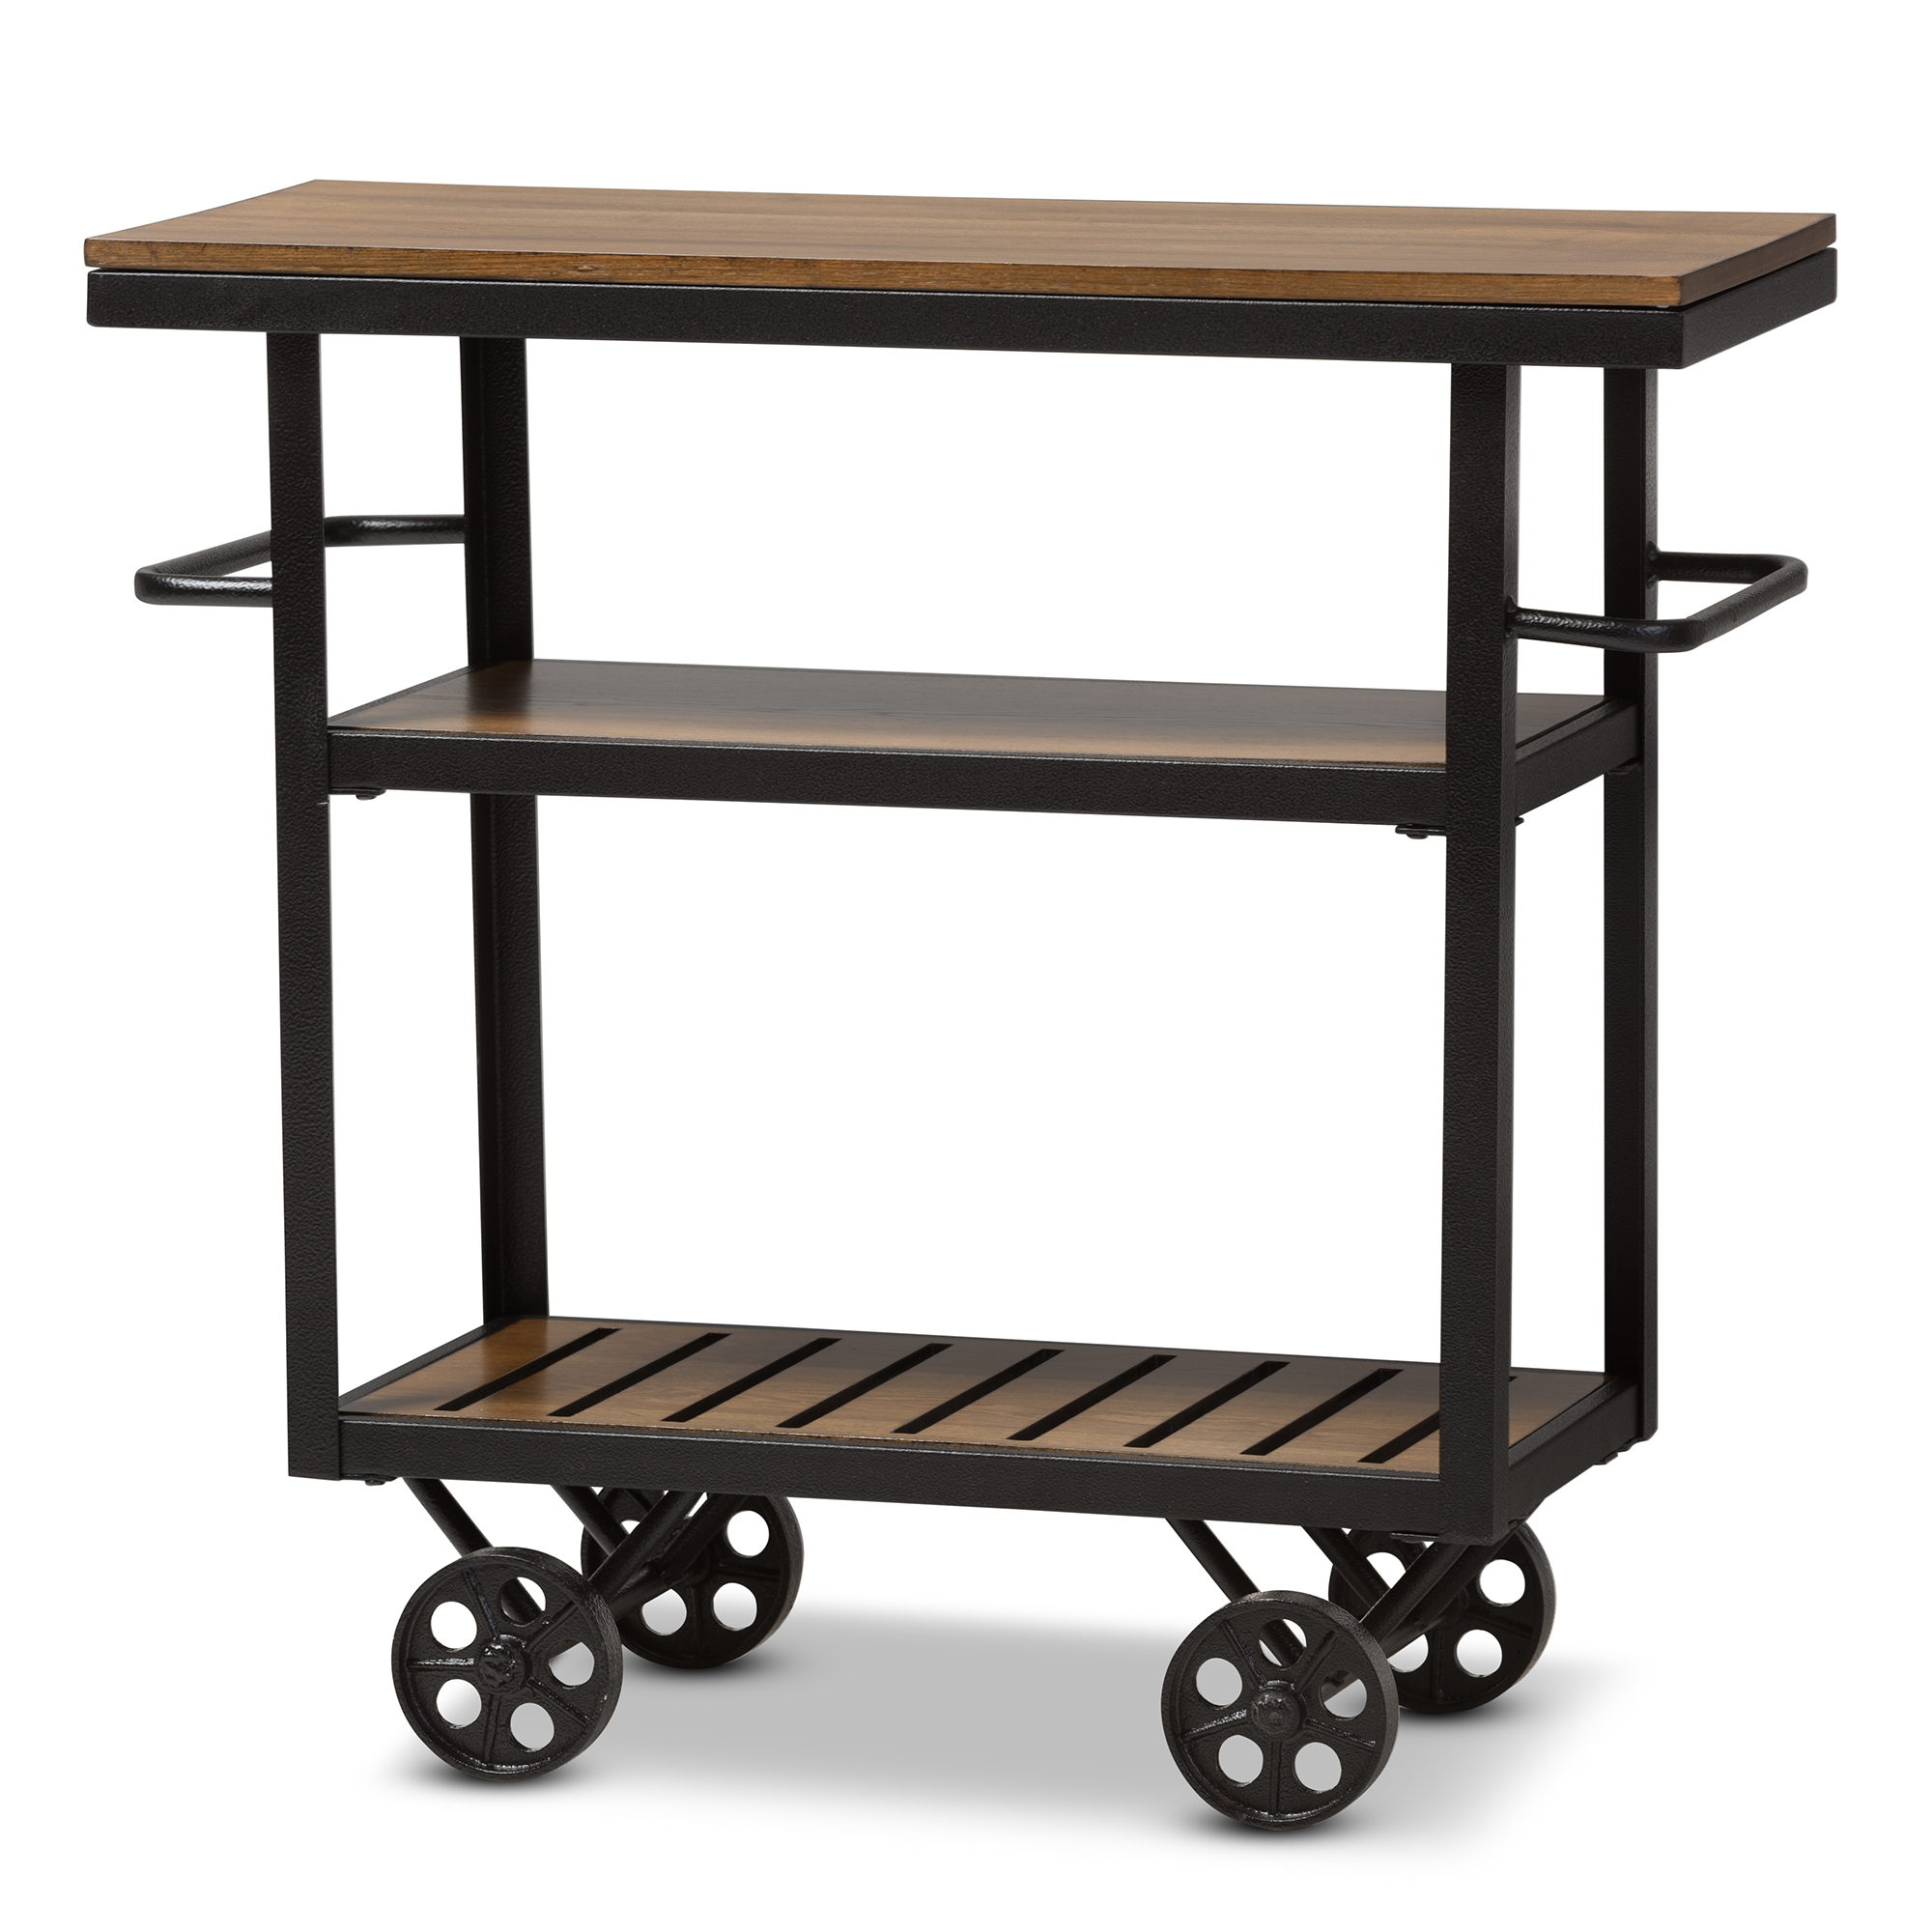 Charming Wholesale Bar Cart | Wholesale Dining Room Furniture | Wholesale Furniture